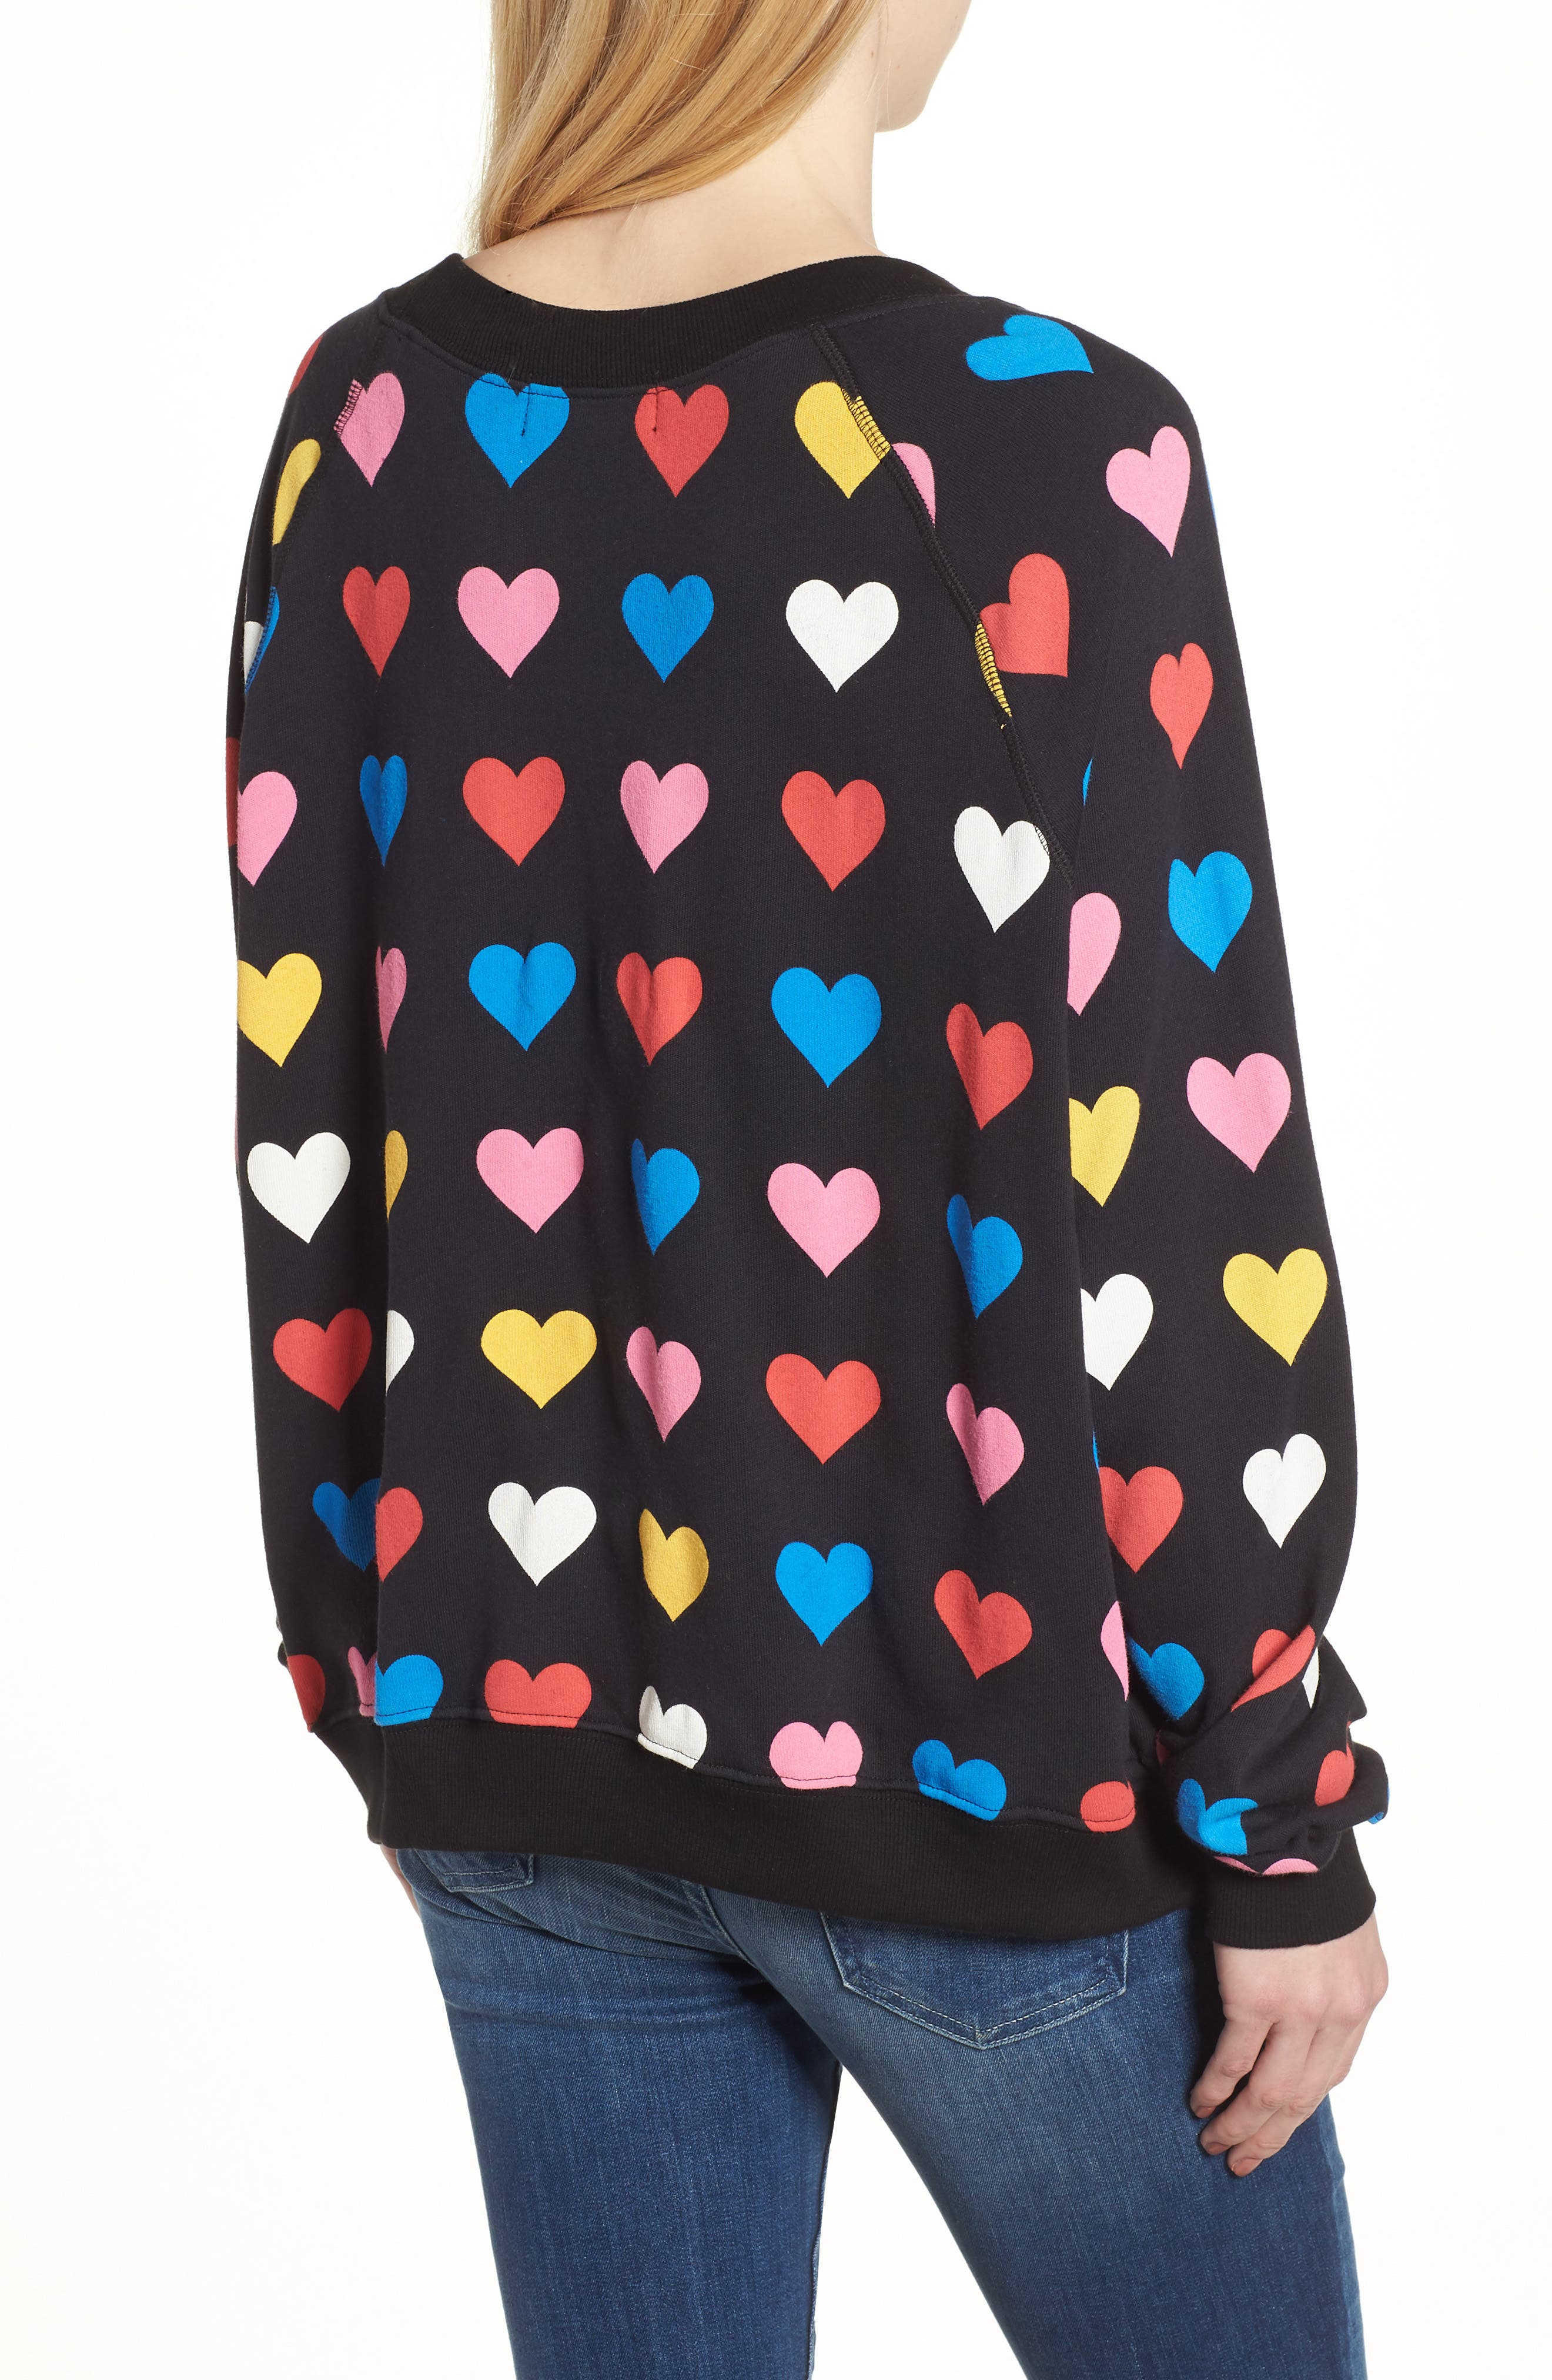 Have a Heart Sommers Sweatshirt,                             Alternate thumbnail 2, color,                             Black